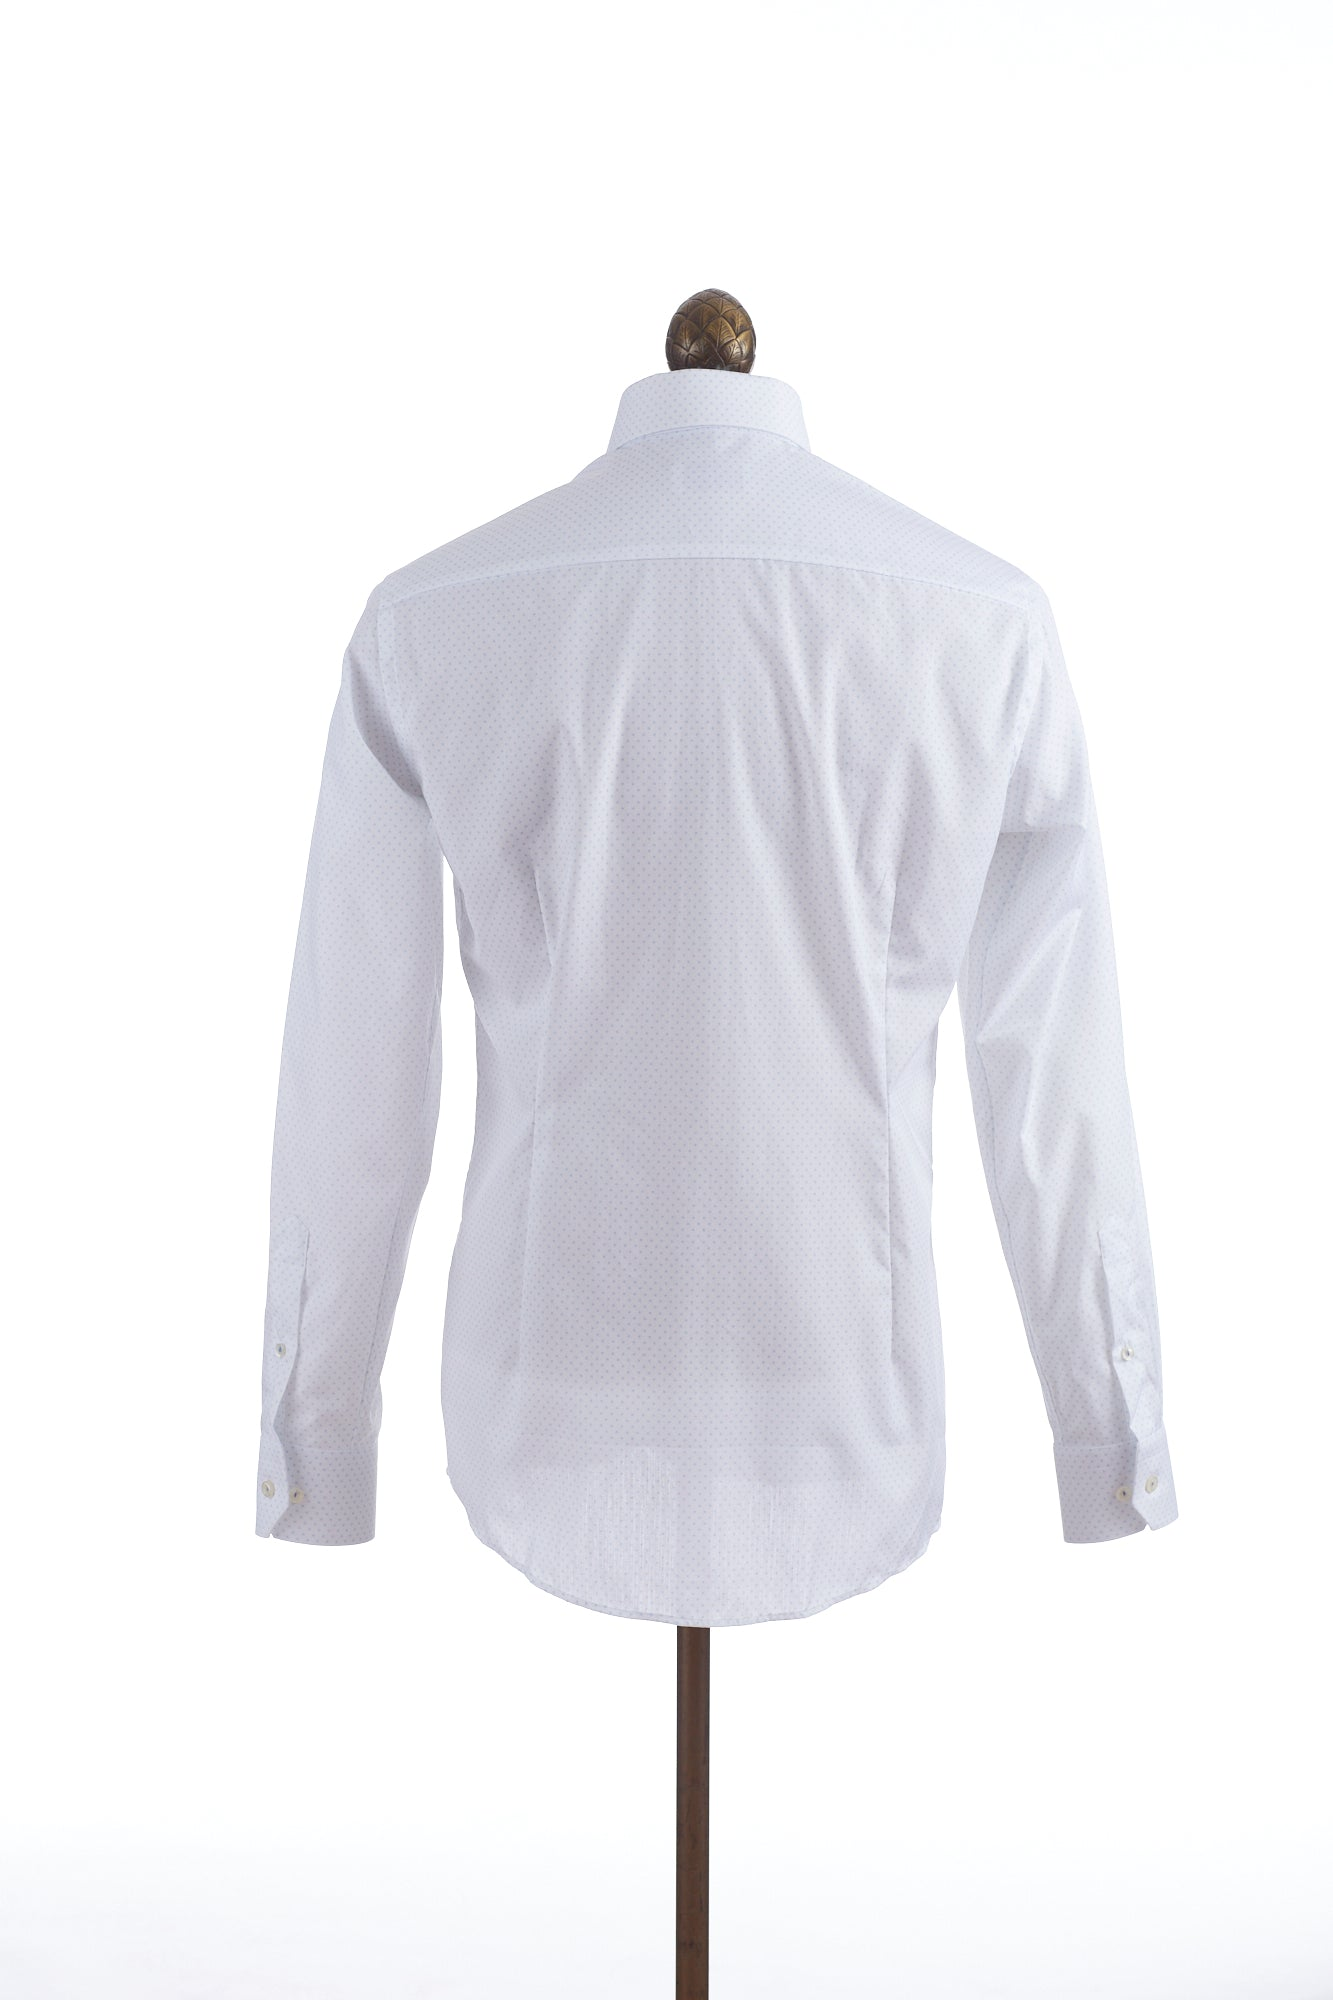 Eton Circle Dot Print White Shirt